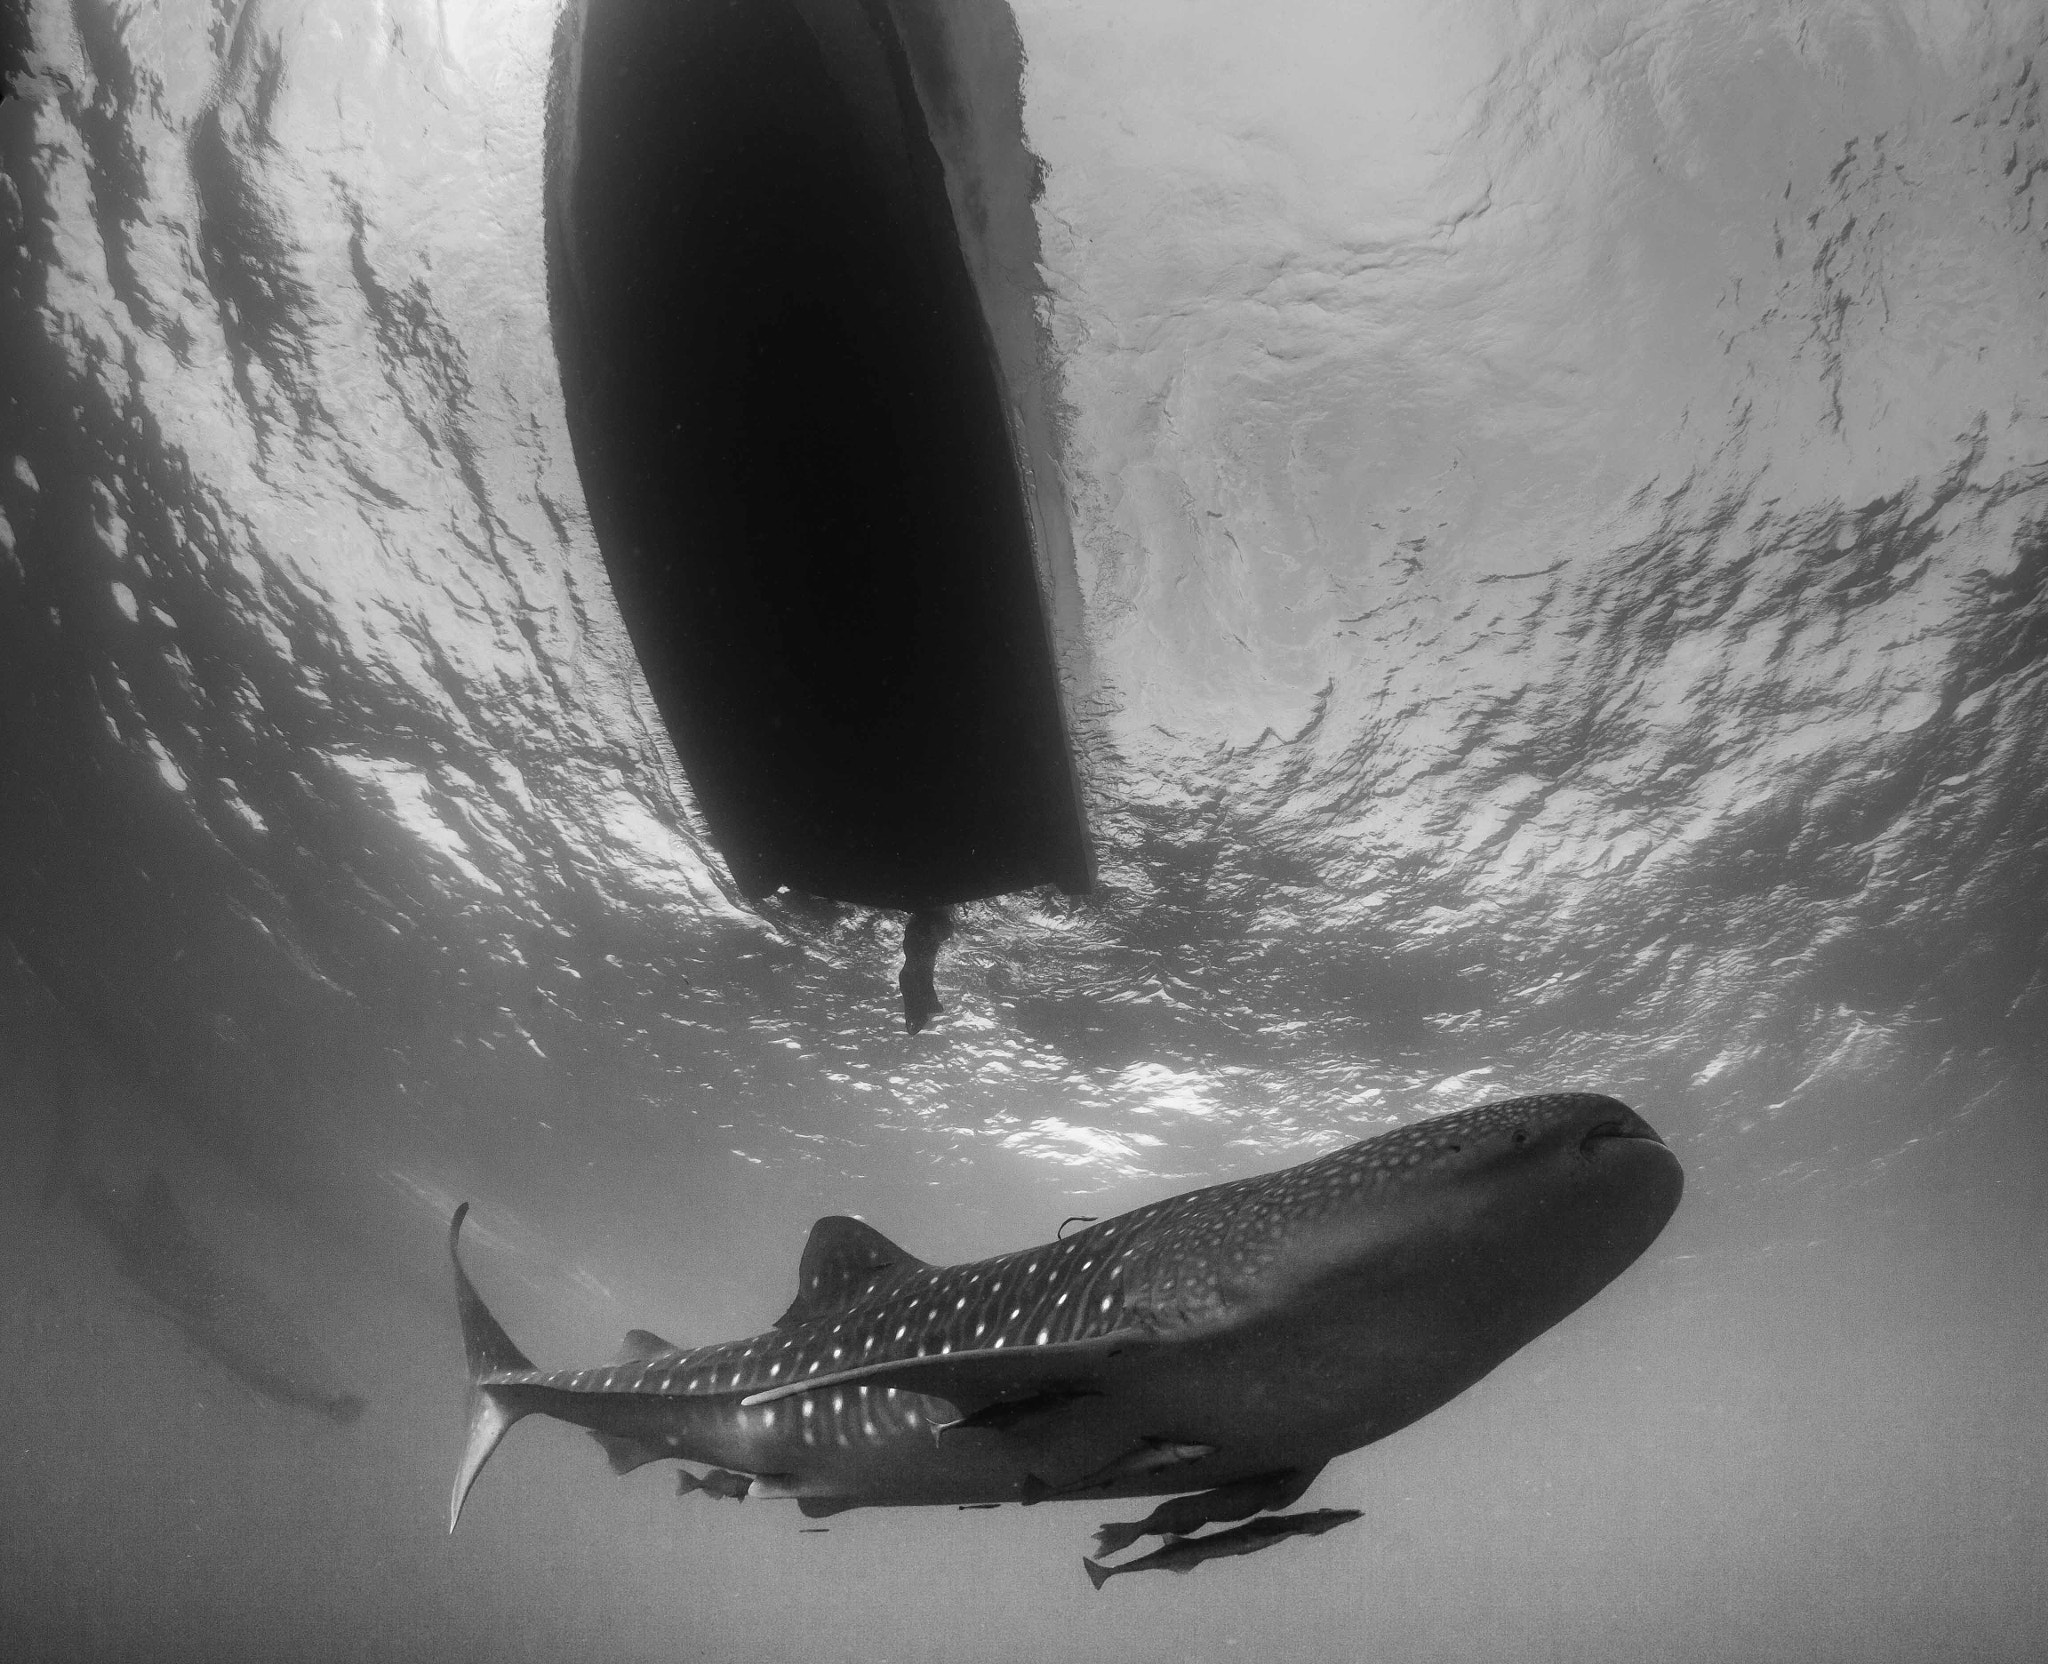 Photograph whale shark under the boat by Paul Cowell on 500px